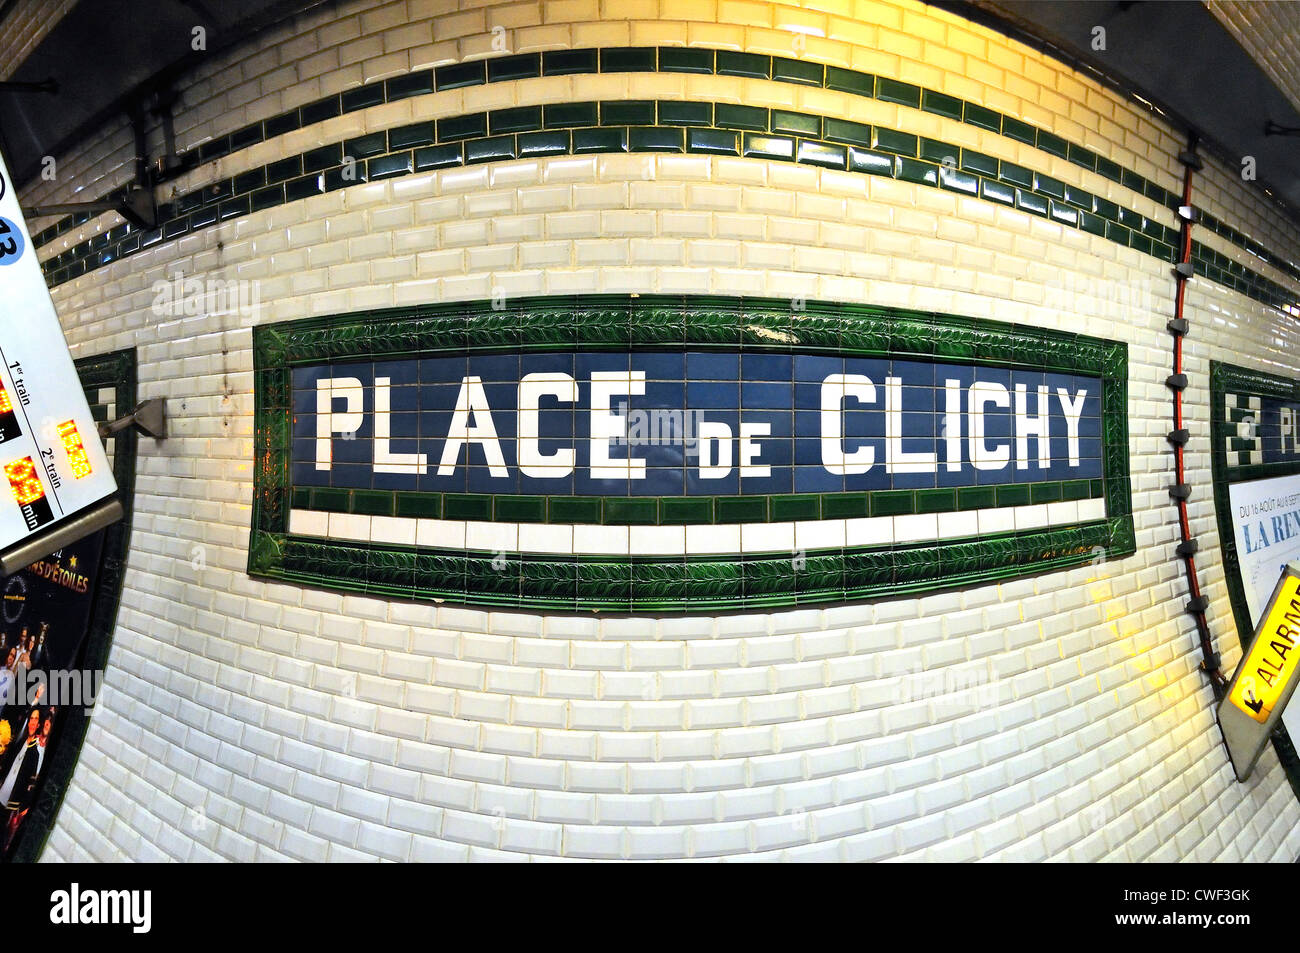 Place Clichy Paris Stock Photos & Place Clichy Paris Stock Images ...